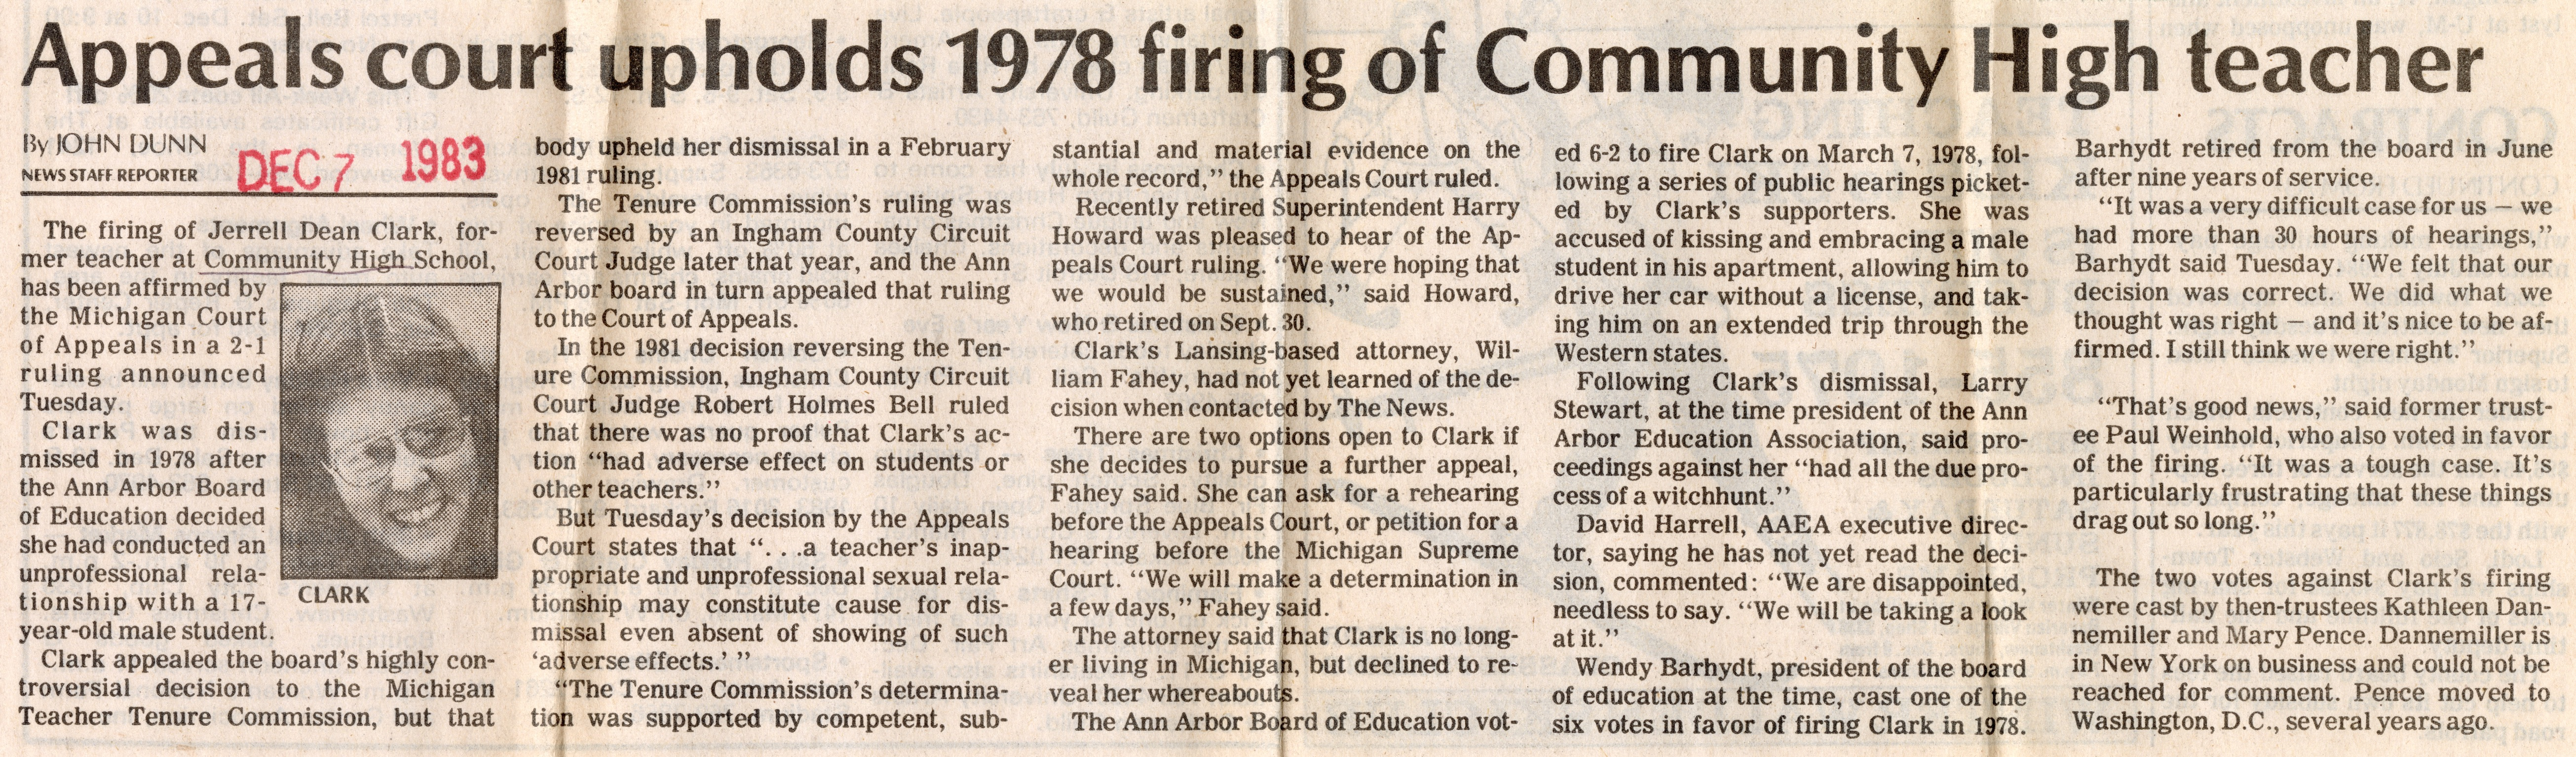 Appeals Court Upholds 1978 Firing of Community High Teacher image